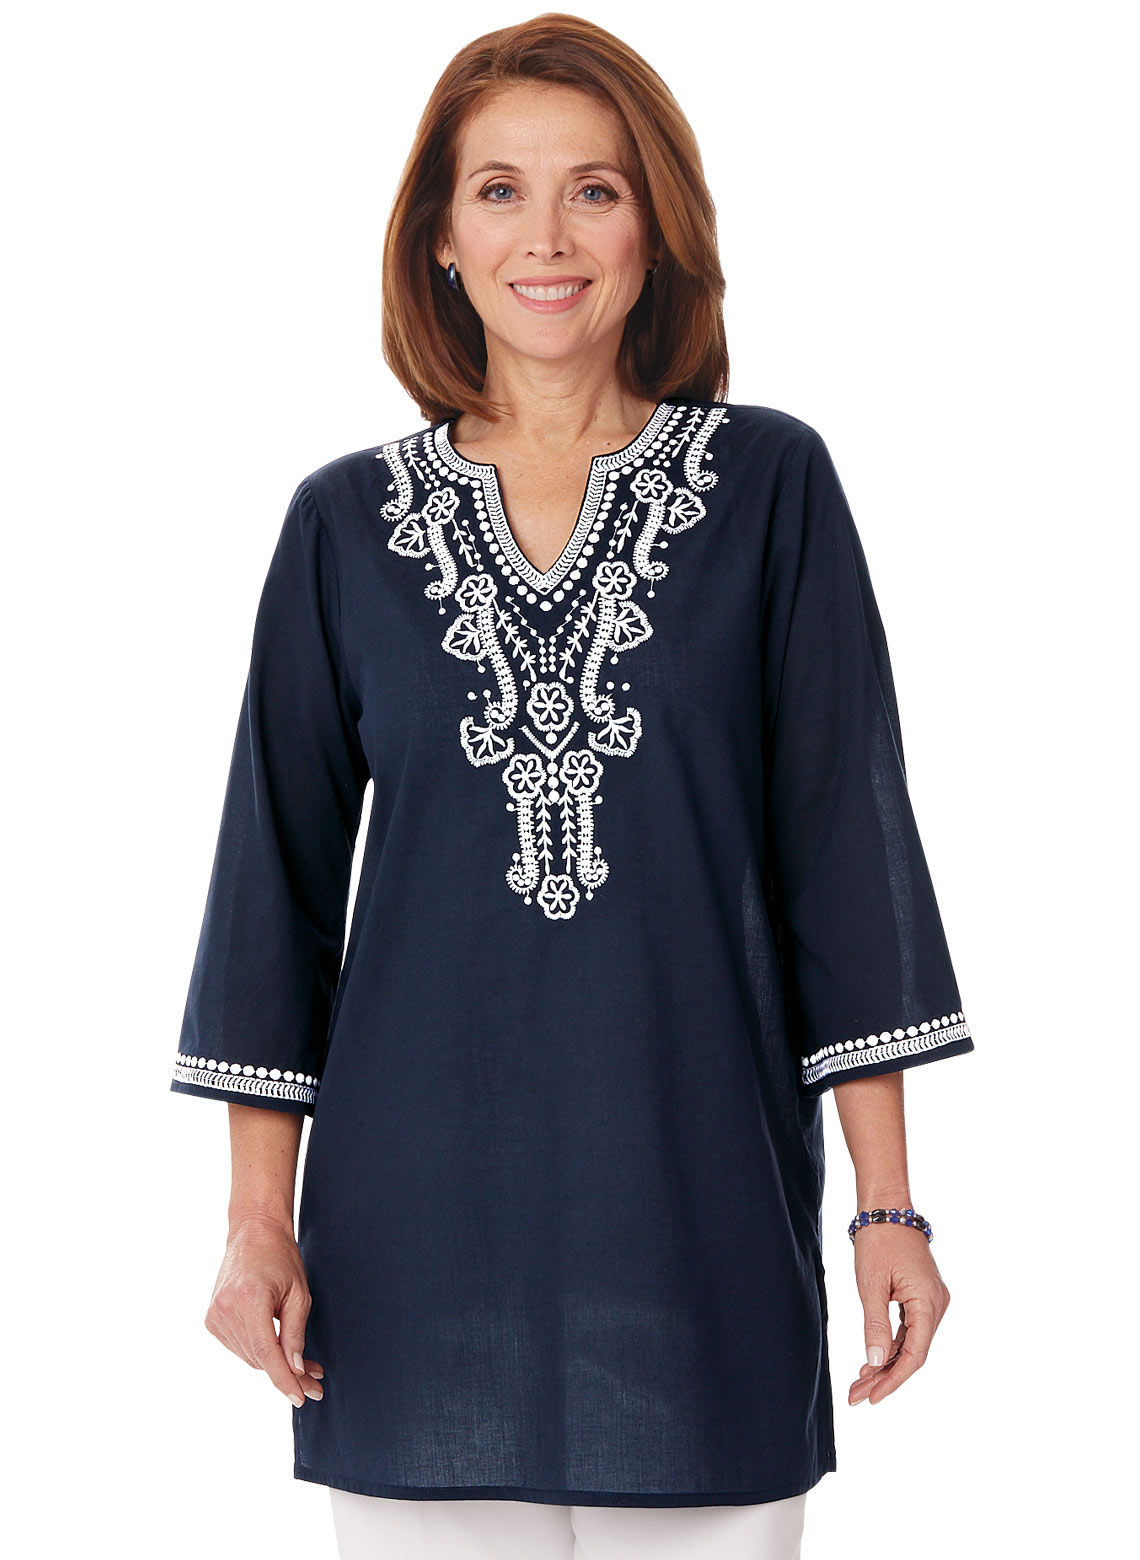 100% Cotton Embroidered Blouse| - Women's Sizes - 64049